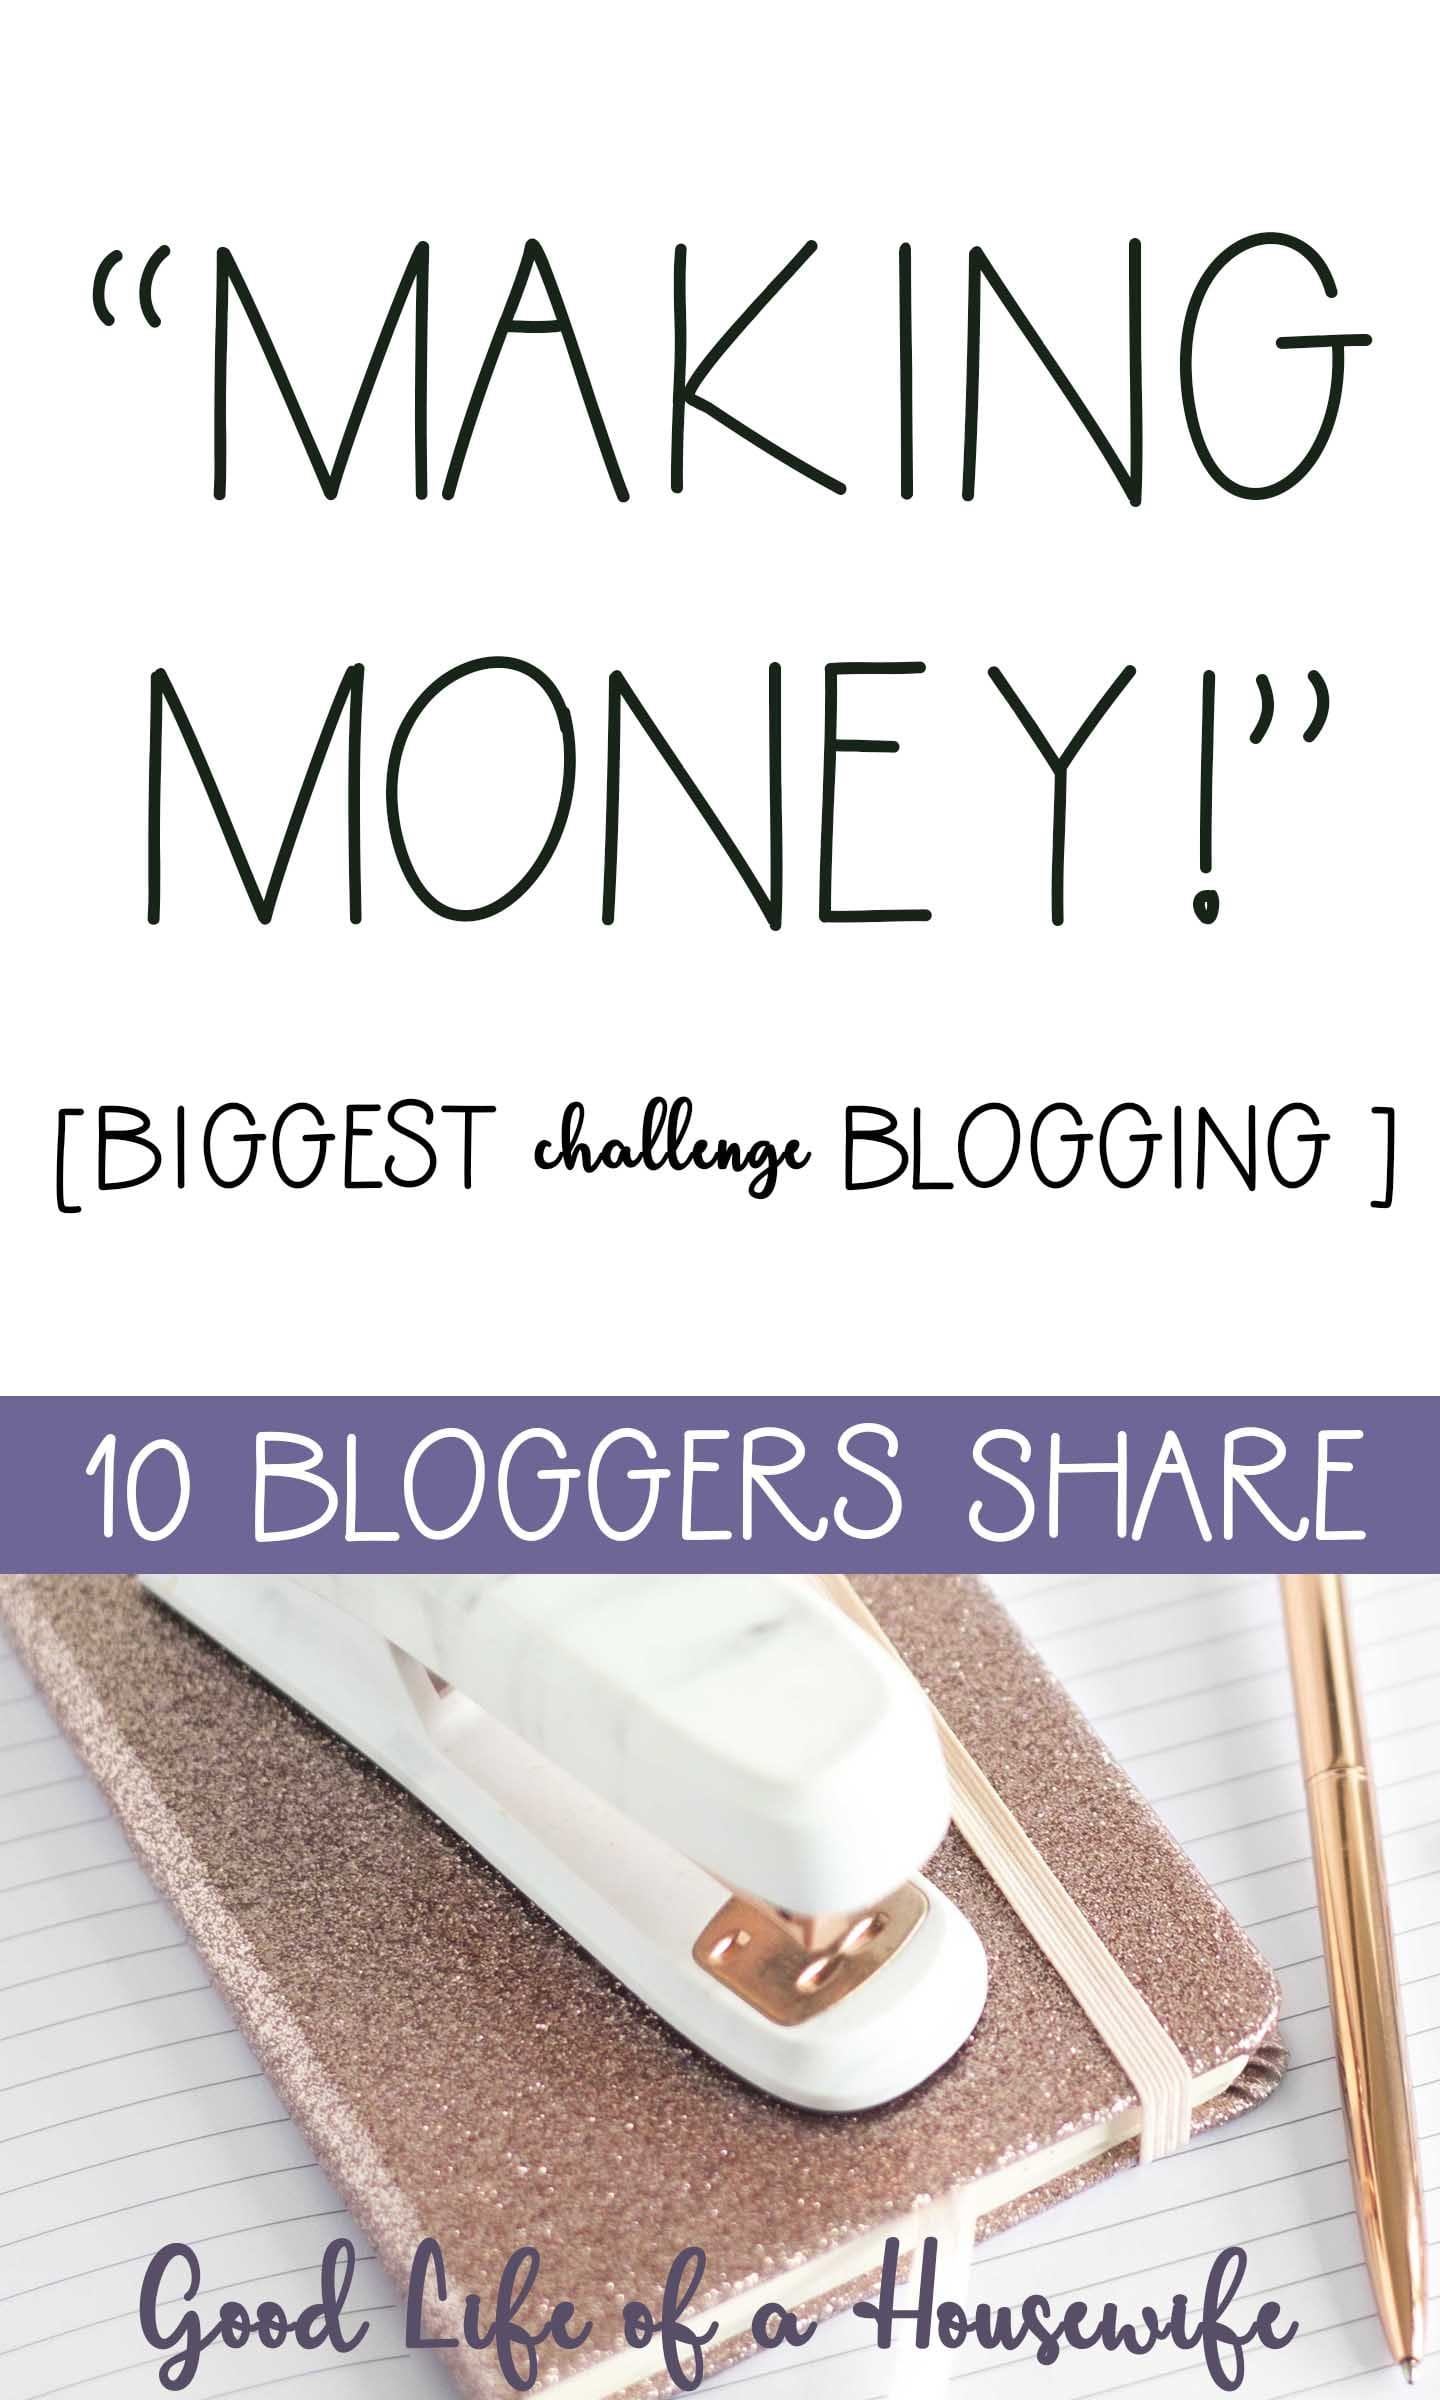 10 blogger share their biggest challenge blogging. The challenge of making money while blogging.